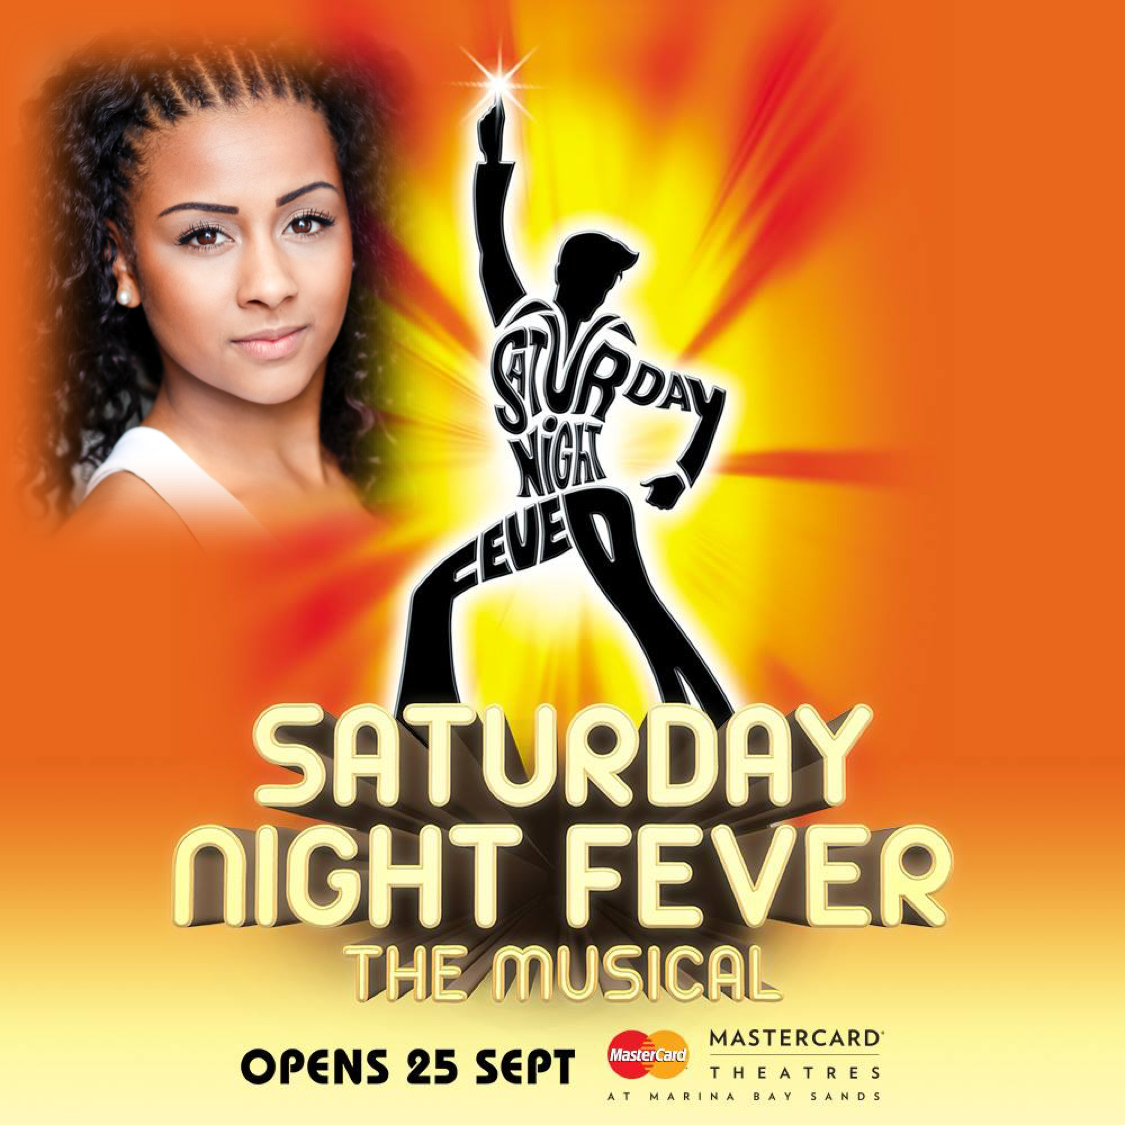 Discoing round the UK Alishia Marie Blake performs in Saturday Night Fever